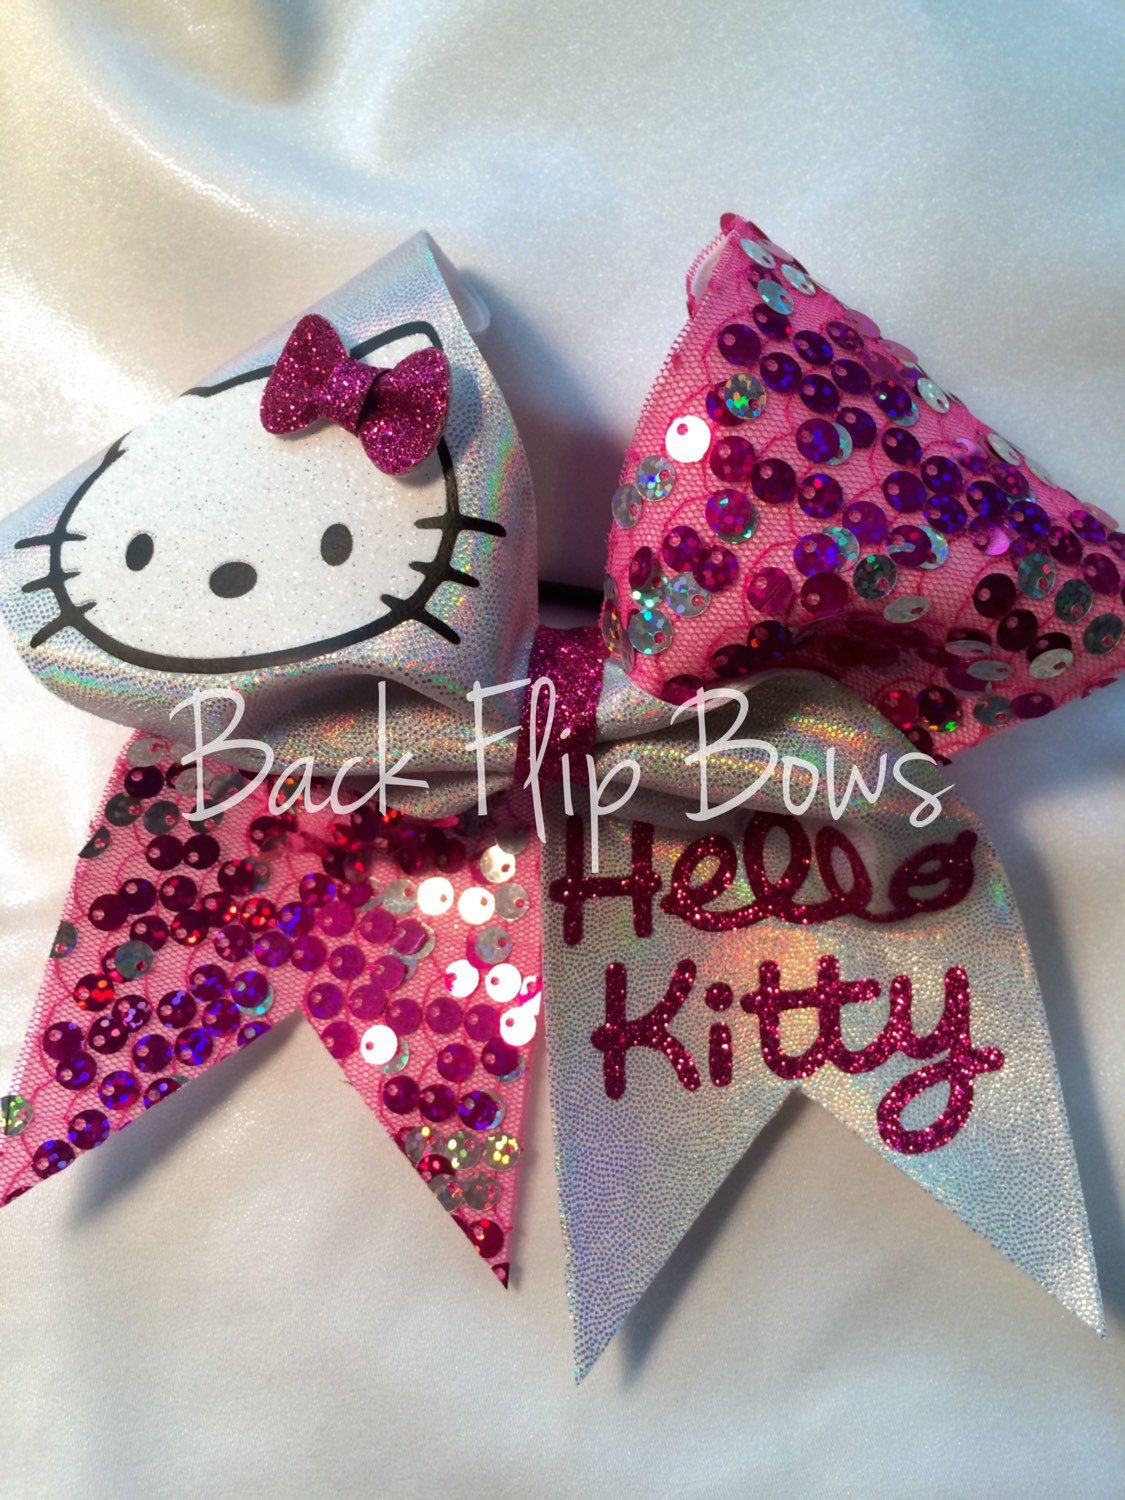 Hello Kitty Inspired cheer bow by BettysBackFlipBows on Etsy https://www.etsy.com/listing/214215589/hello-kitty-inspired-cheer-bow